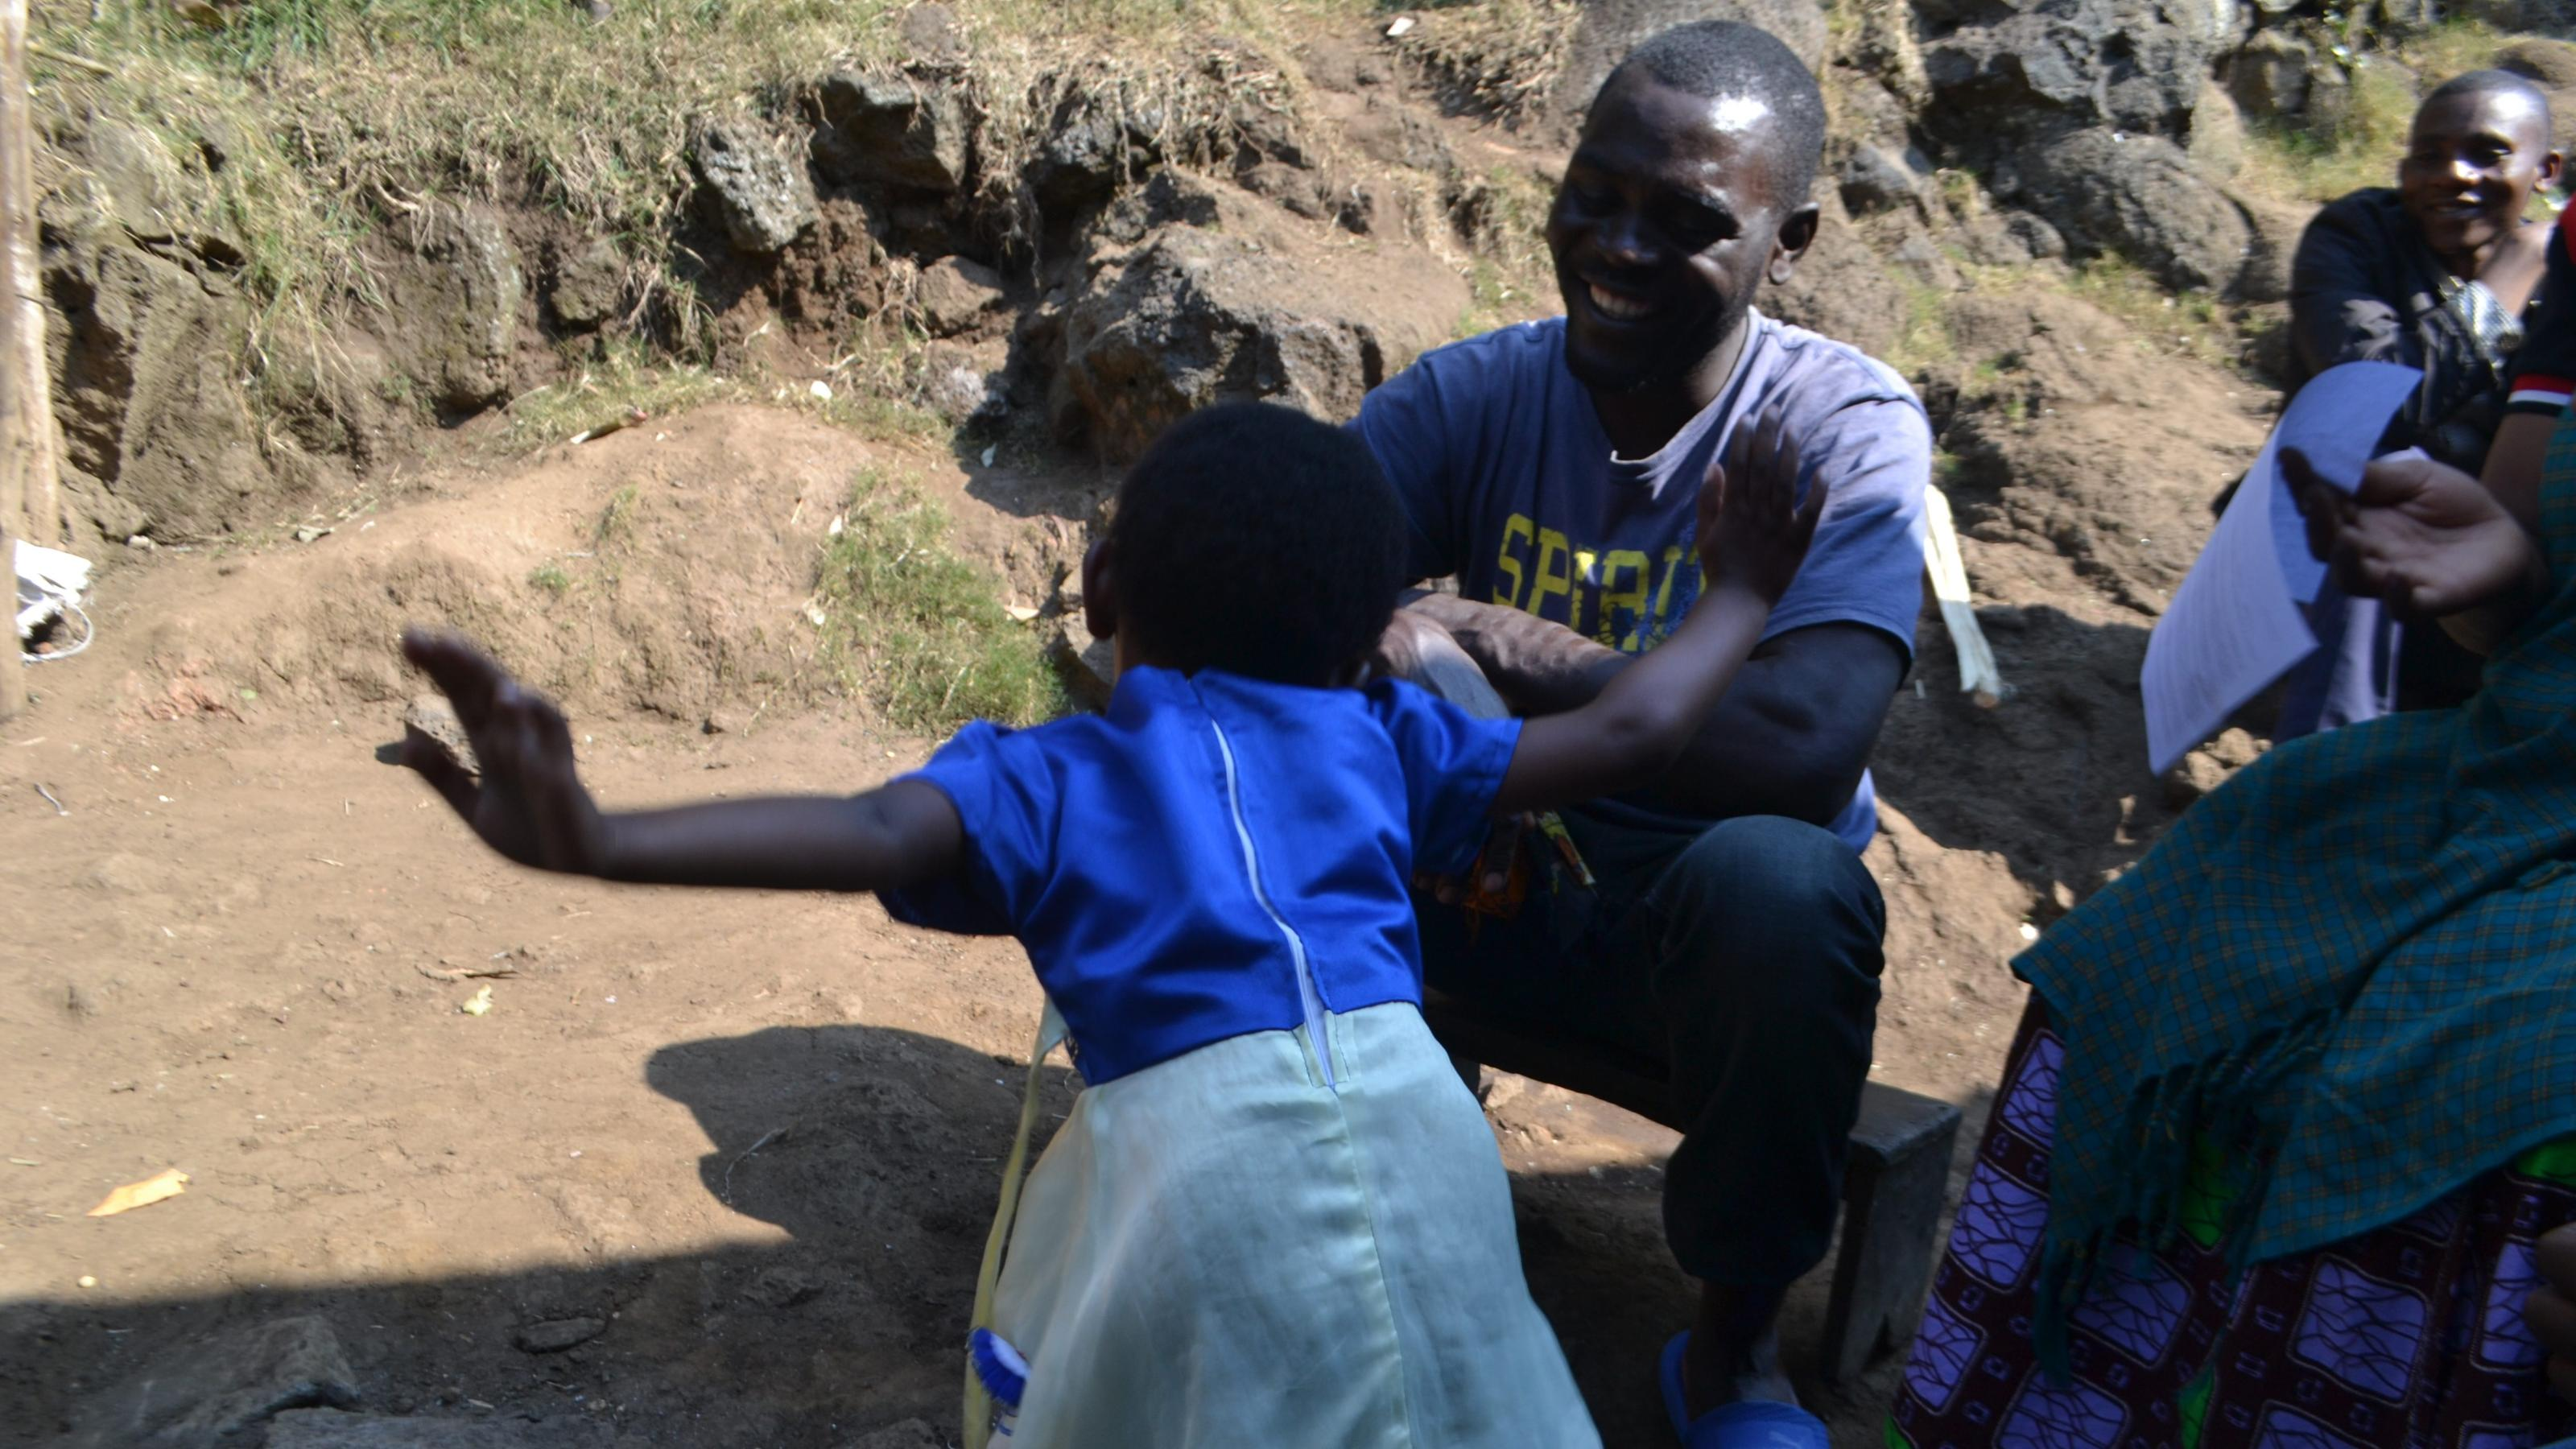 Rwanda's plan to reduce poverty by harnessing fathers' love